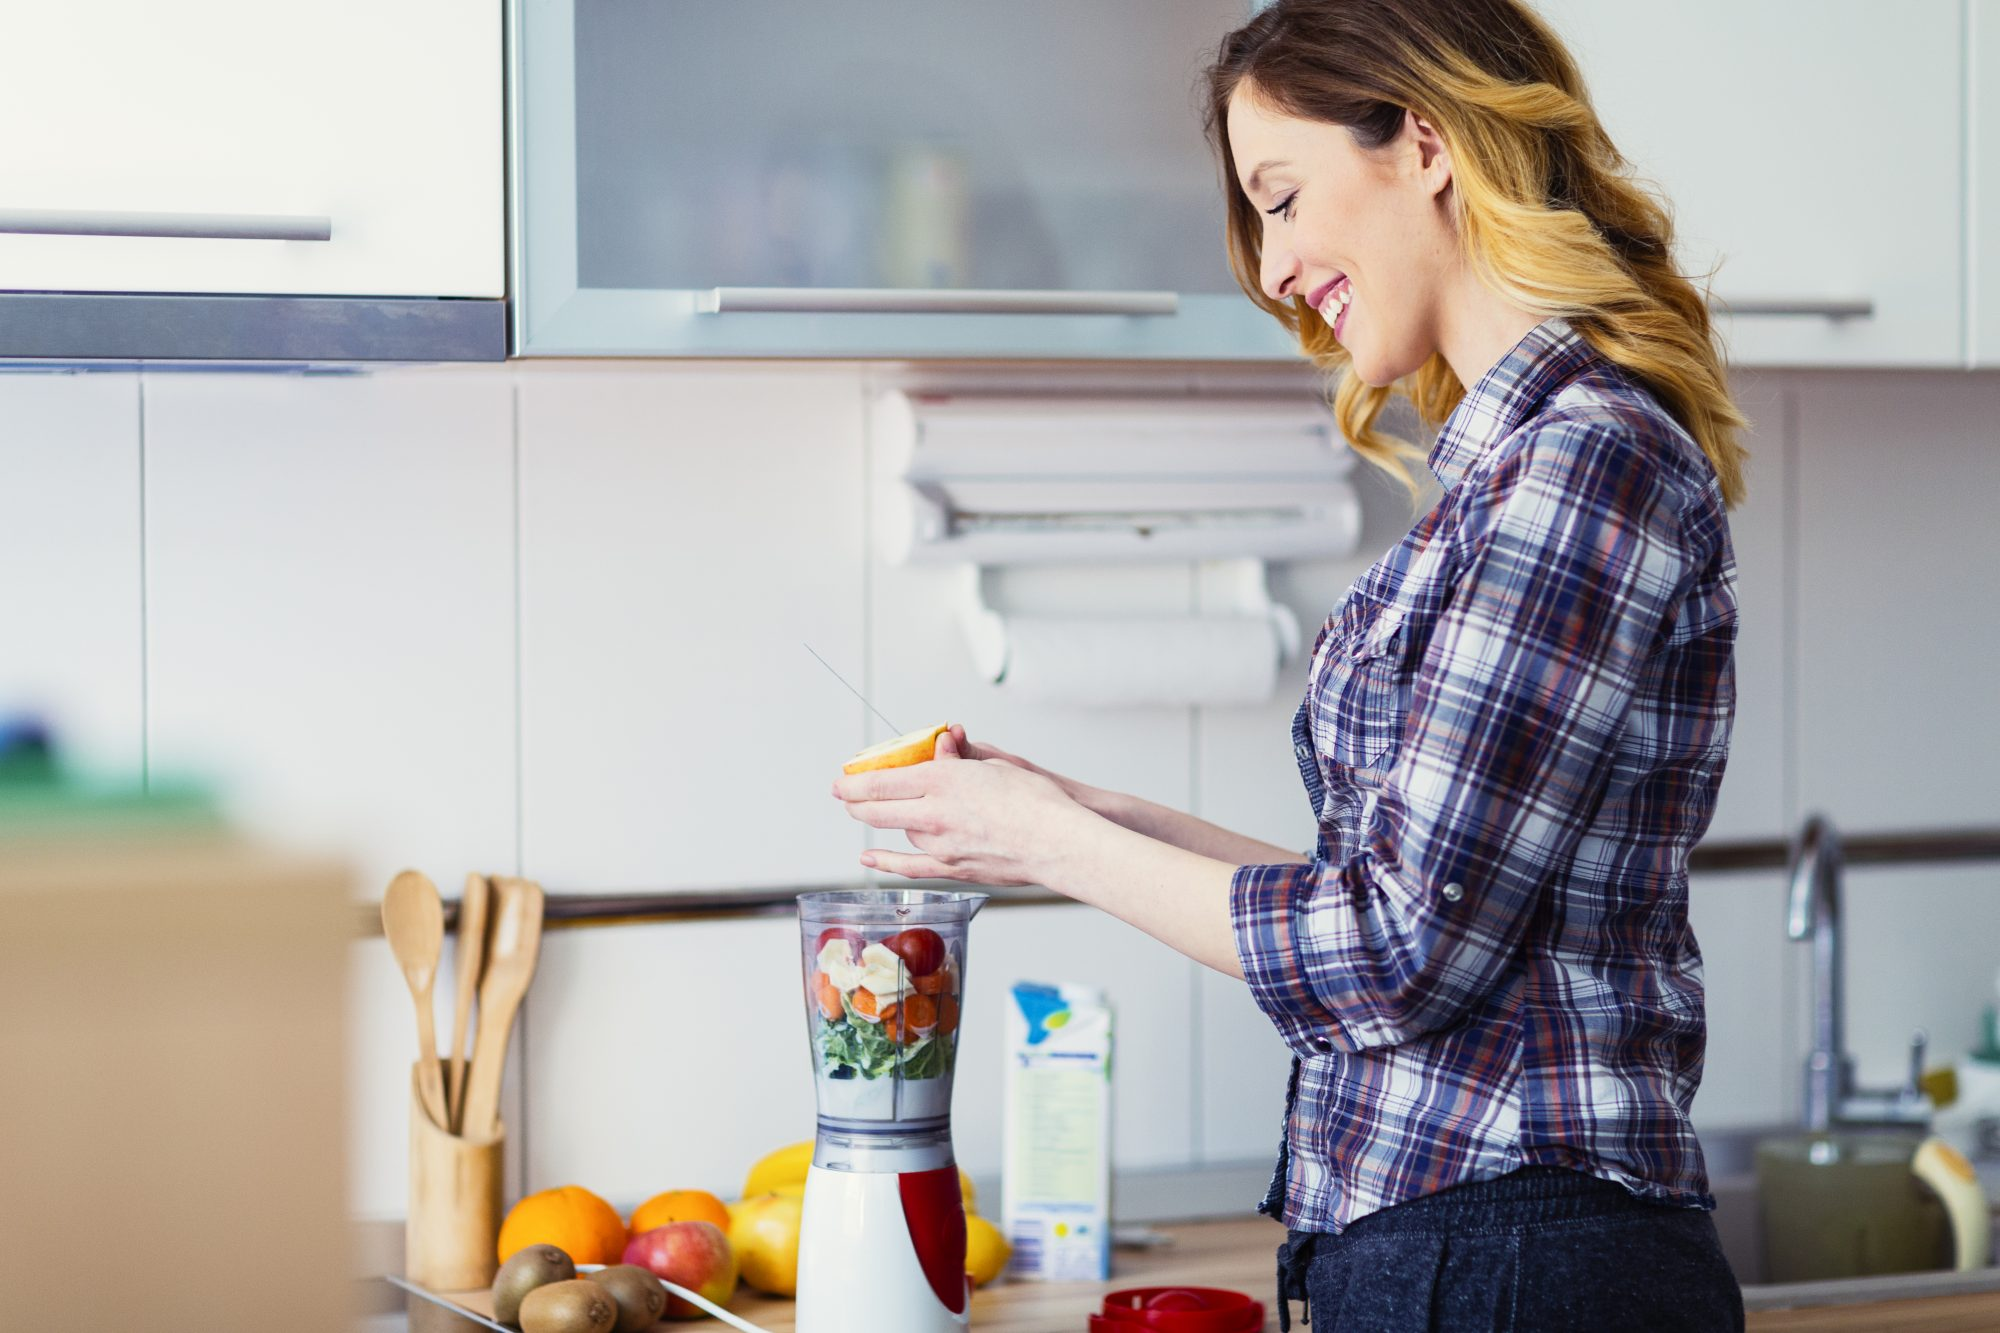 I Tried Dieting Like My Mom...And It Worked - Health